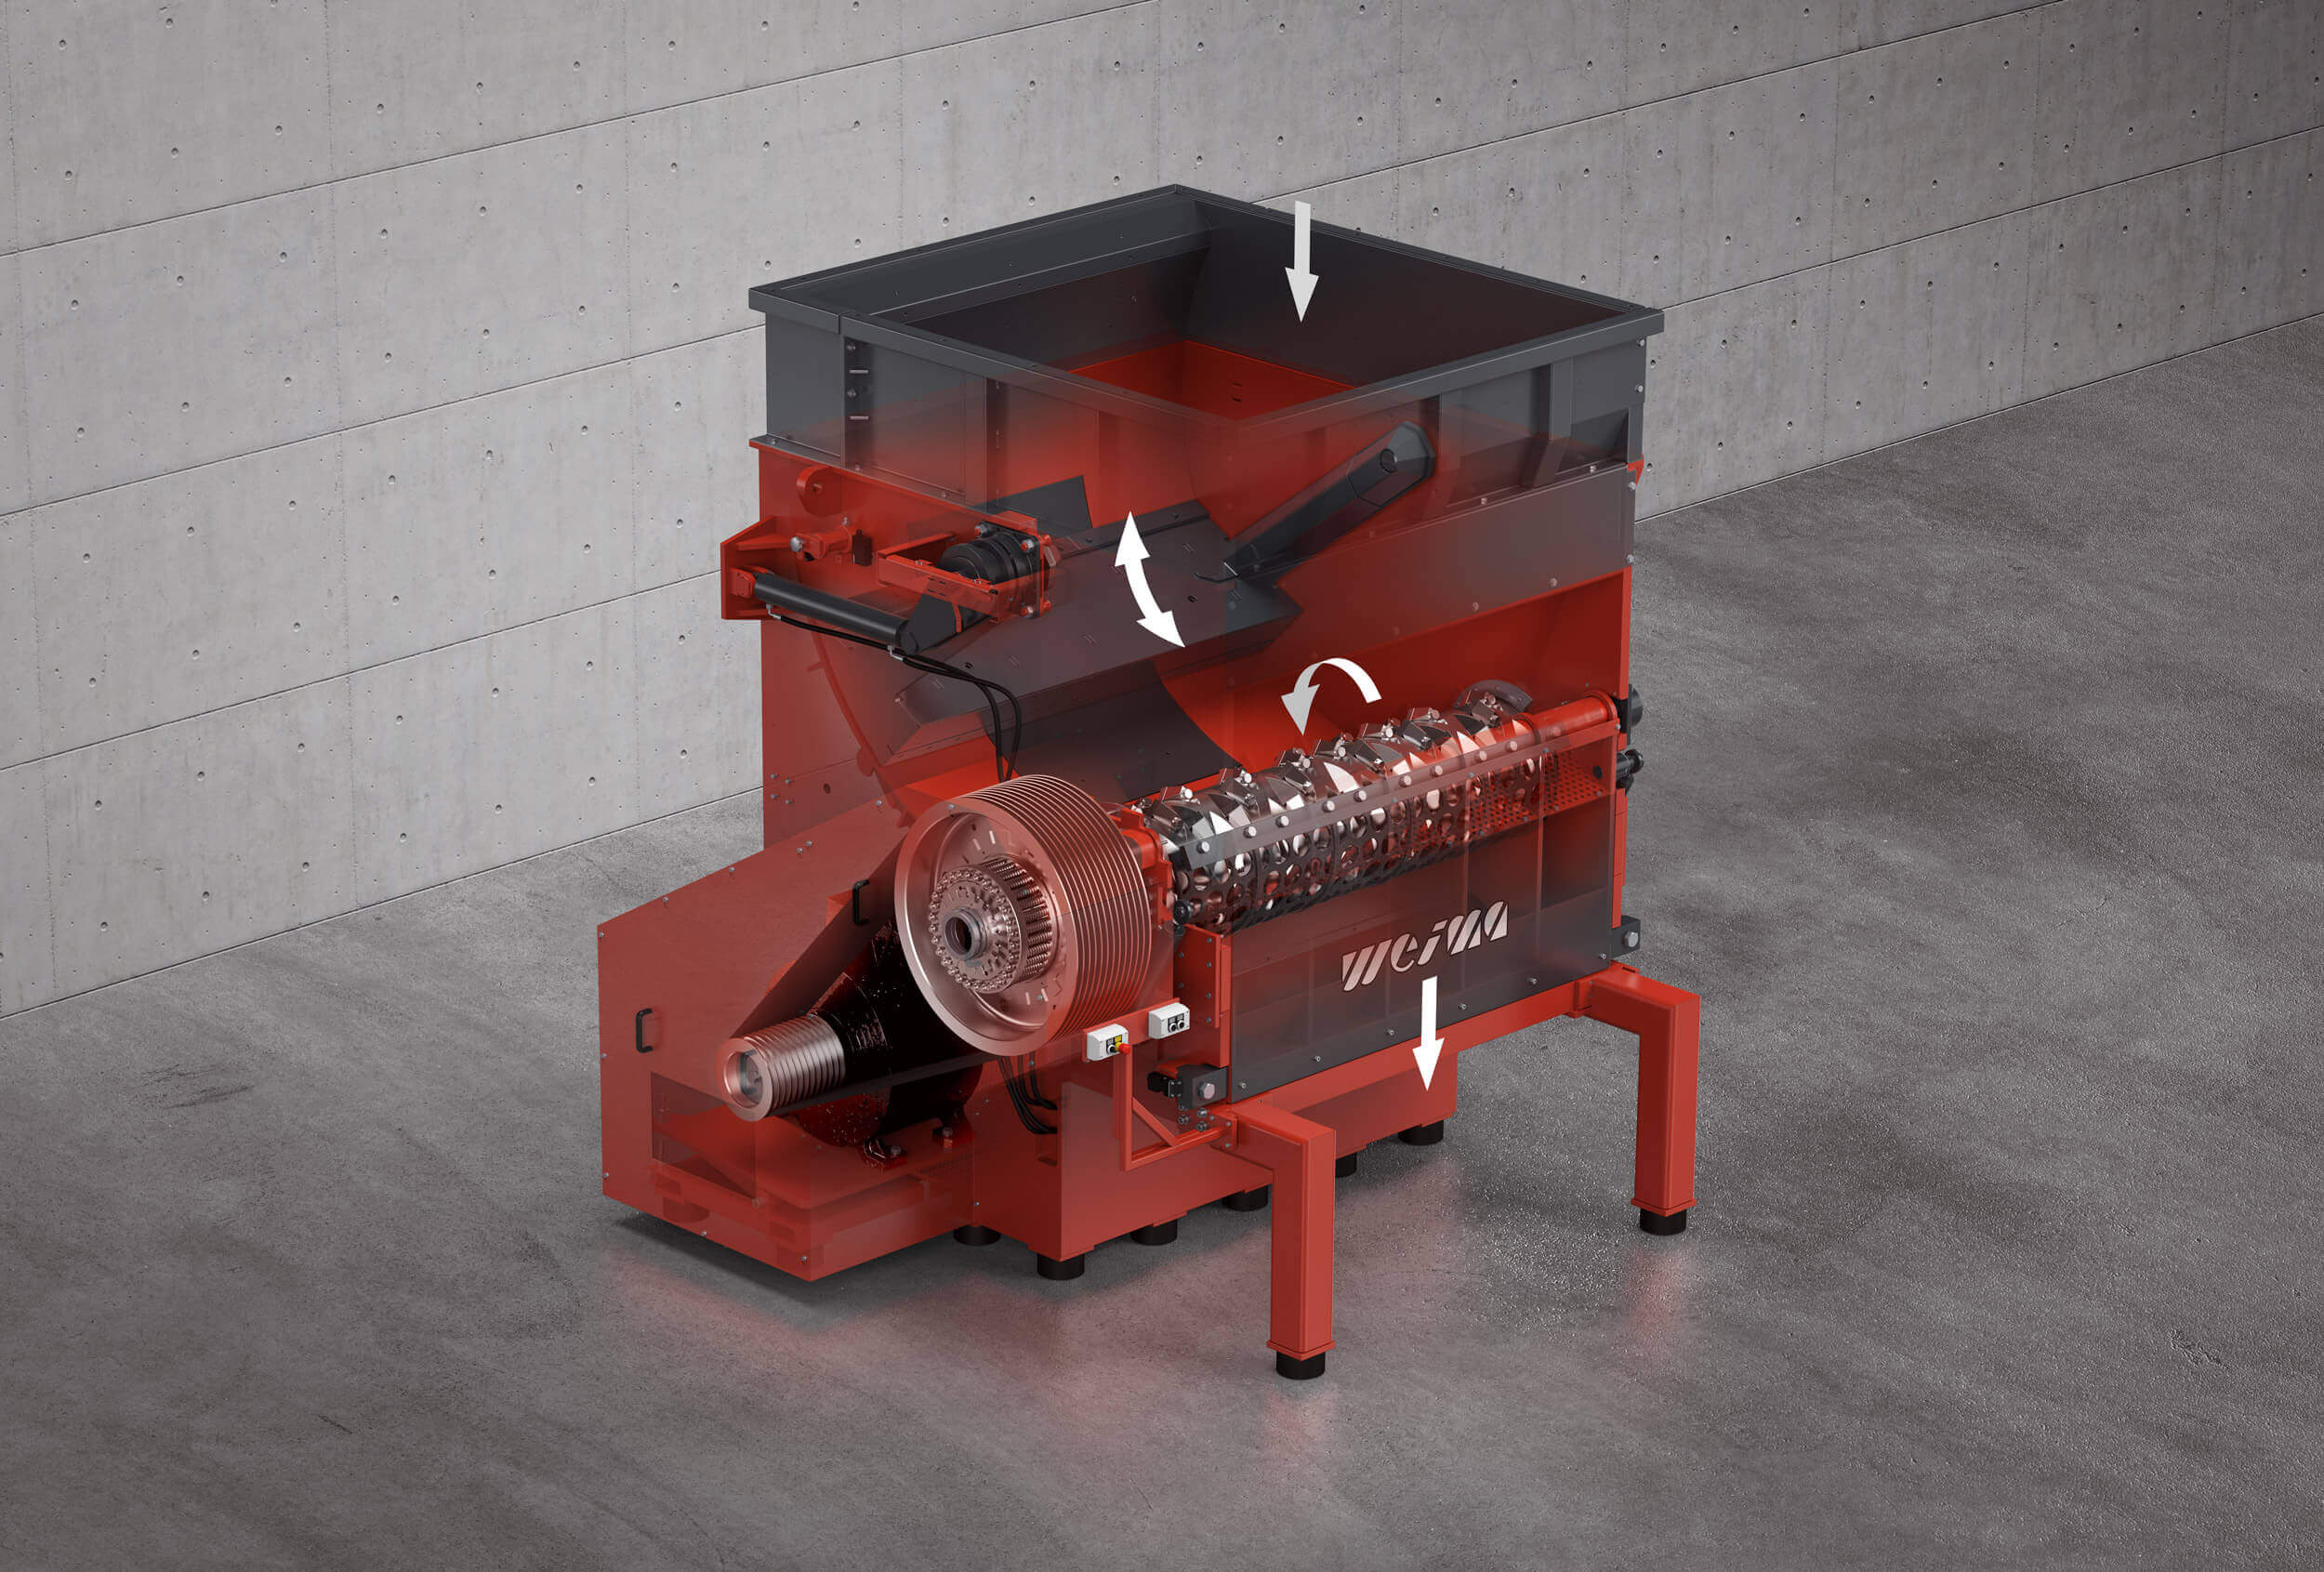 Rendered image of WEIMA WKS 1800 single-shaft shredder with X-Ray view of the machine components